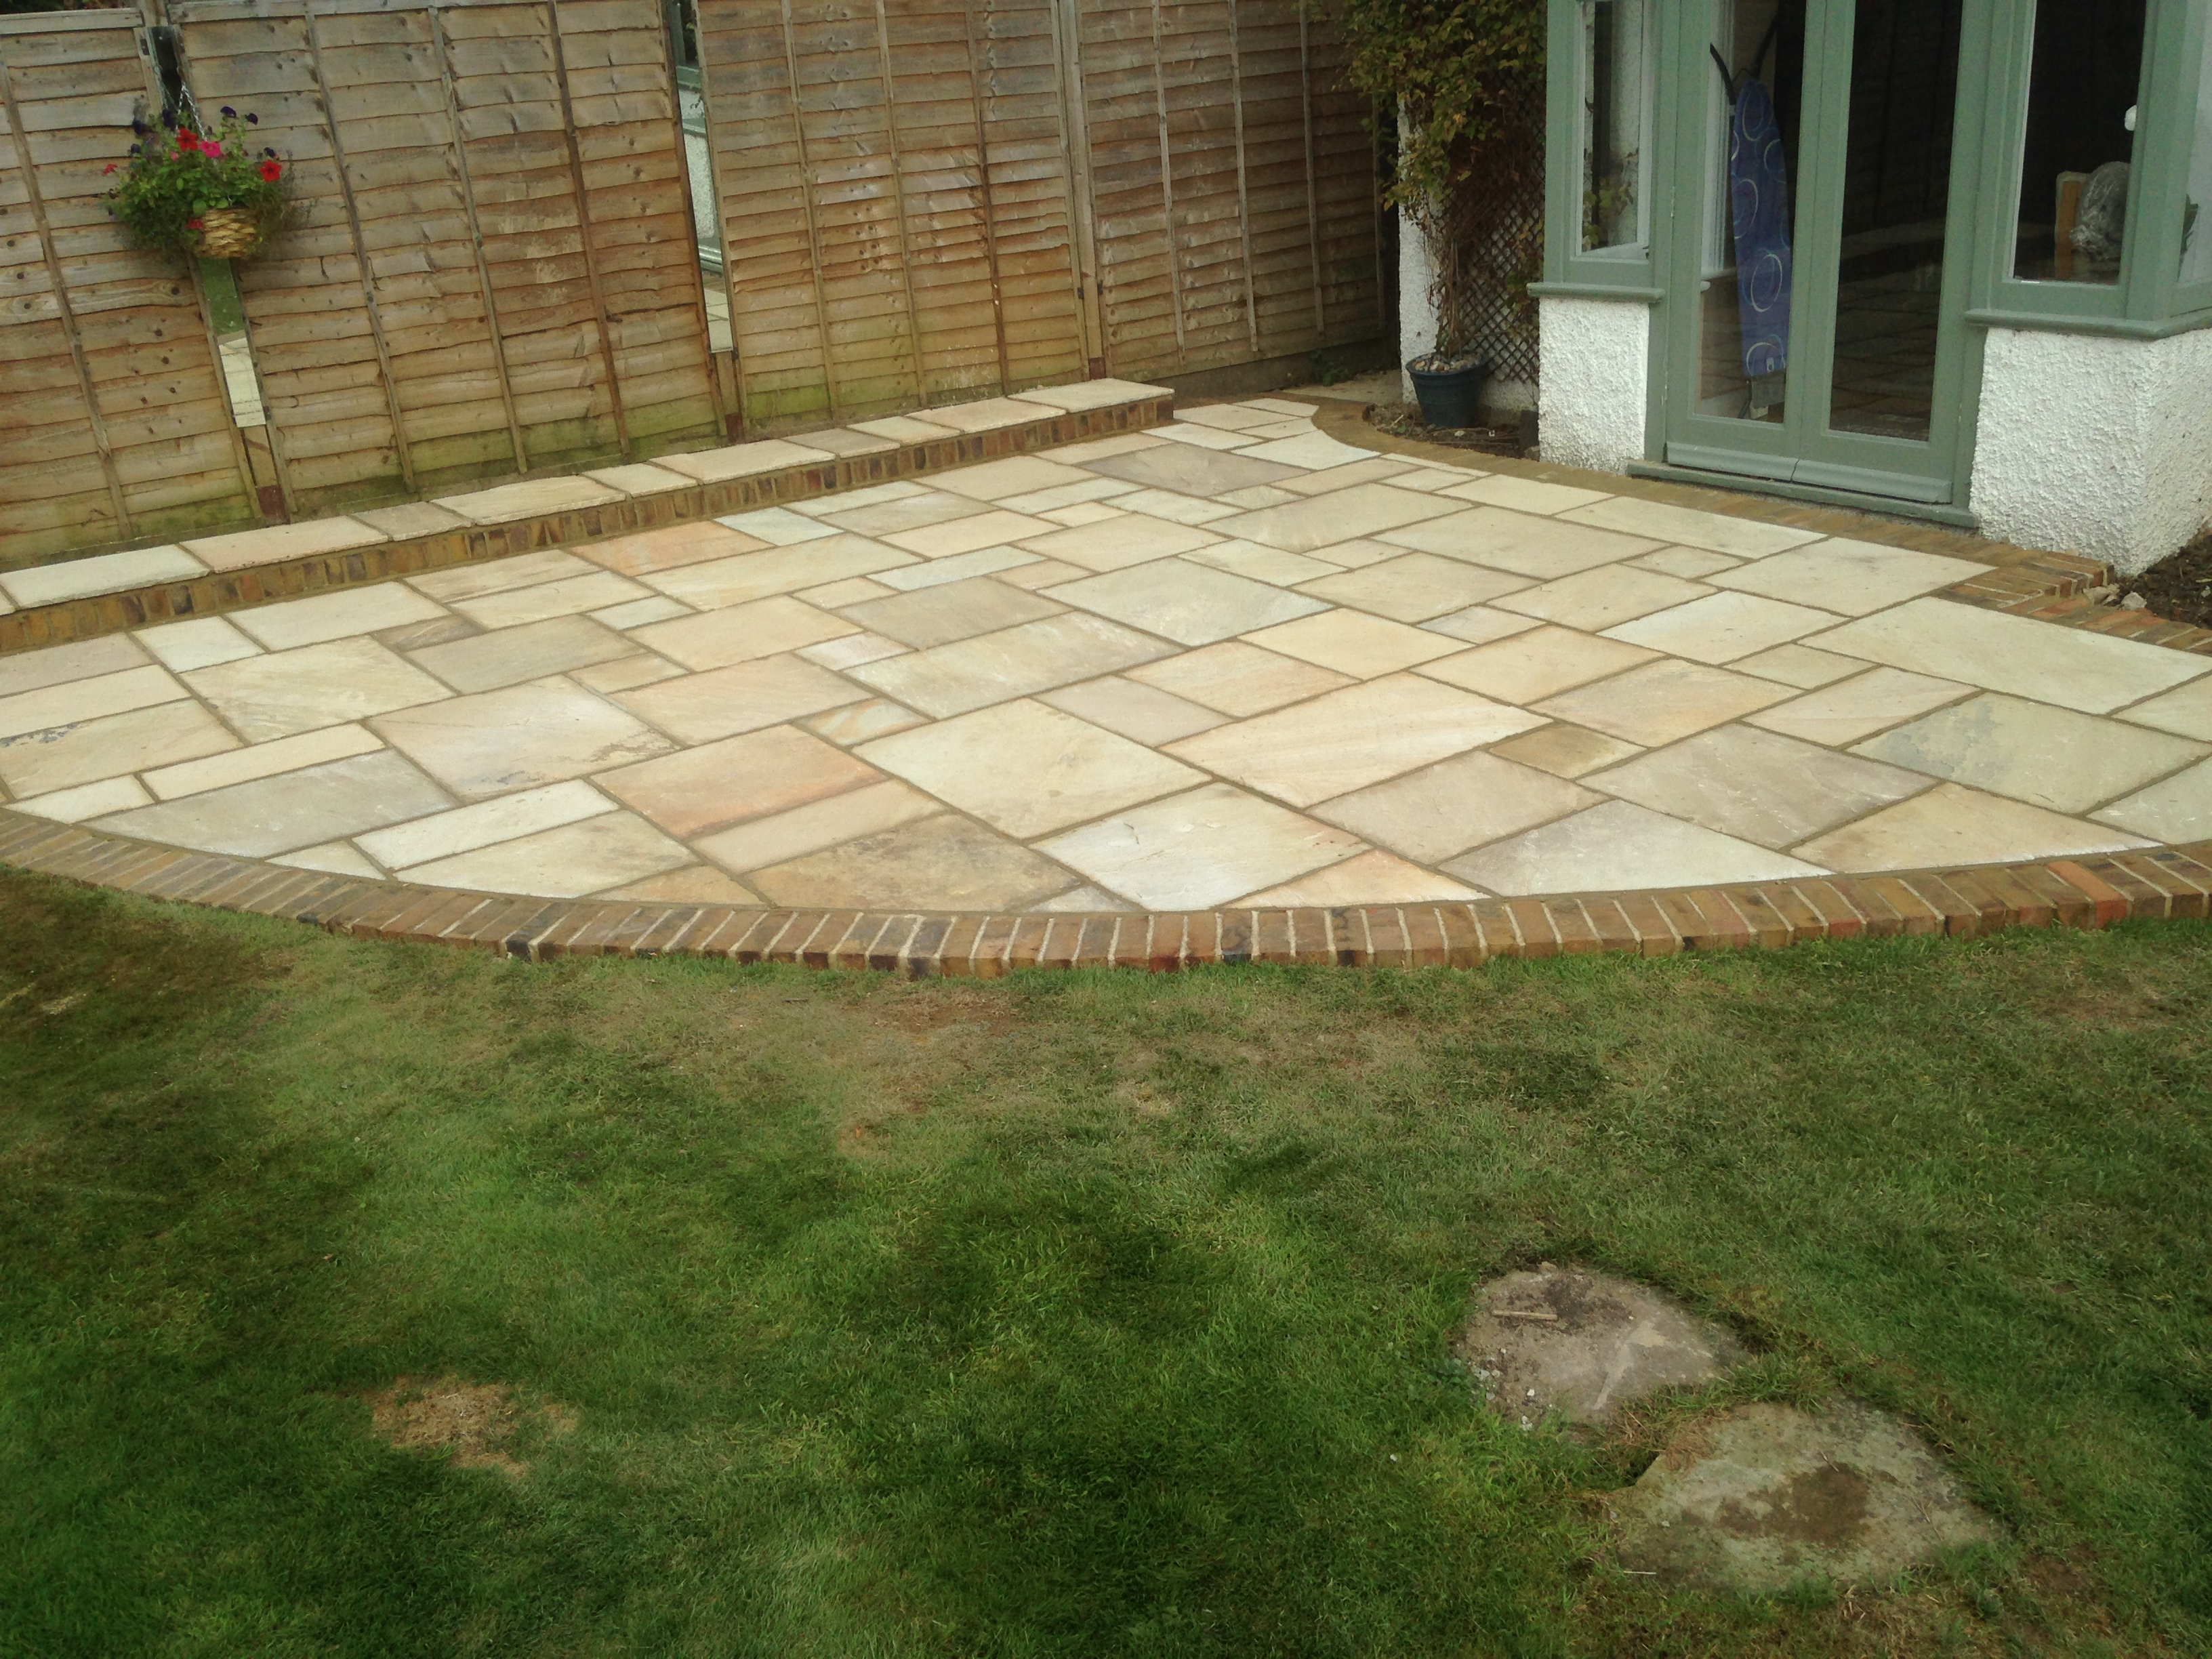 The Patio Makes This Small Garden A Larger Feel By Creating A Good Use Of  The Available Space. The Sandstone Patio With Brick Edging Is Very  Complimentary ...